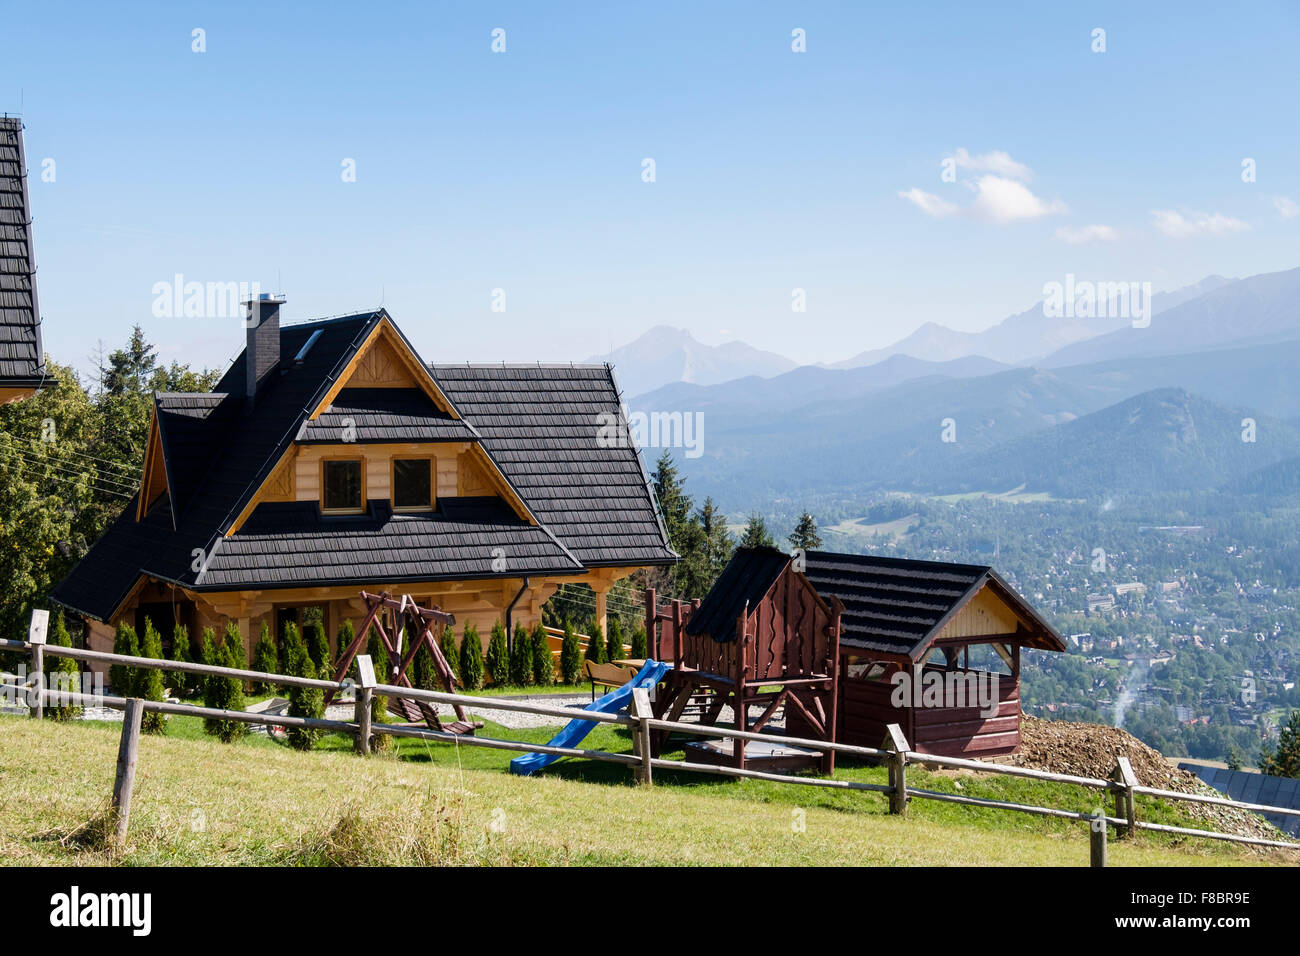 Traditional alpine wooden house overlooking high tatra mountains stock photo royalty free image - Traditional polish houses wood mastership ...